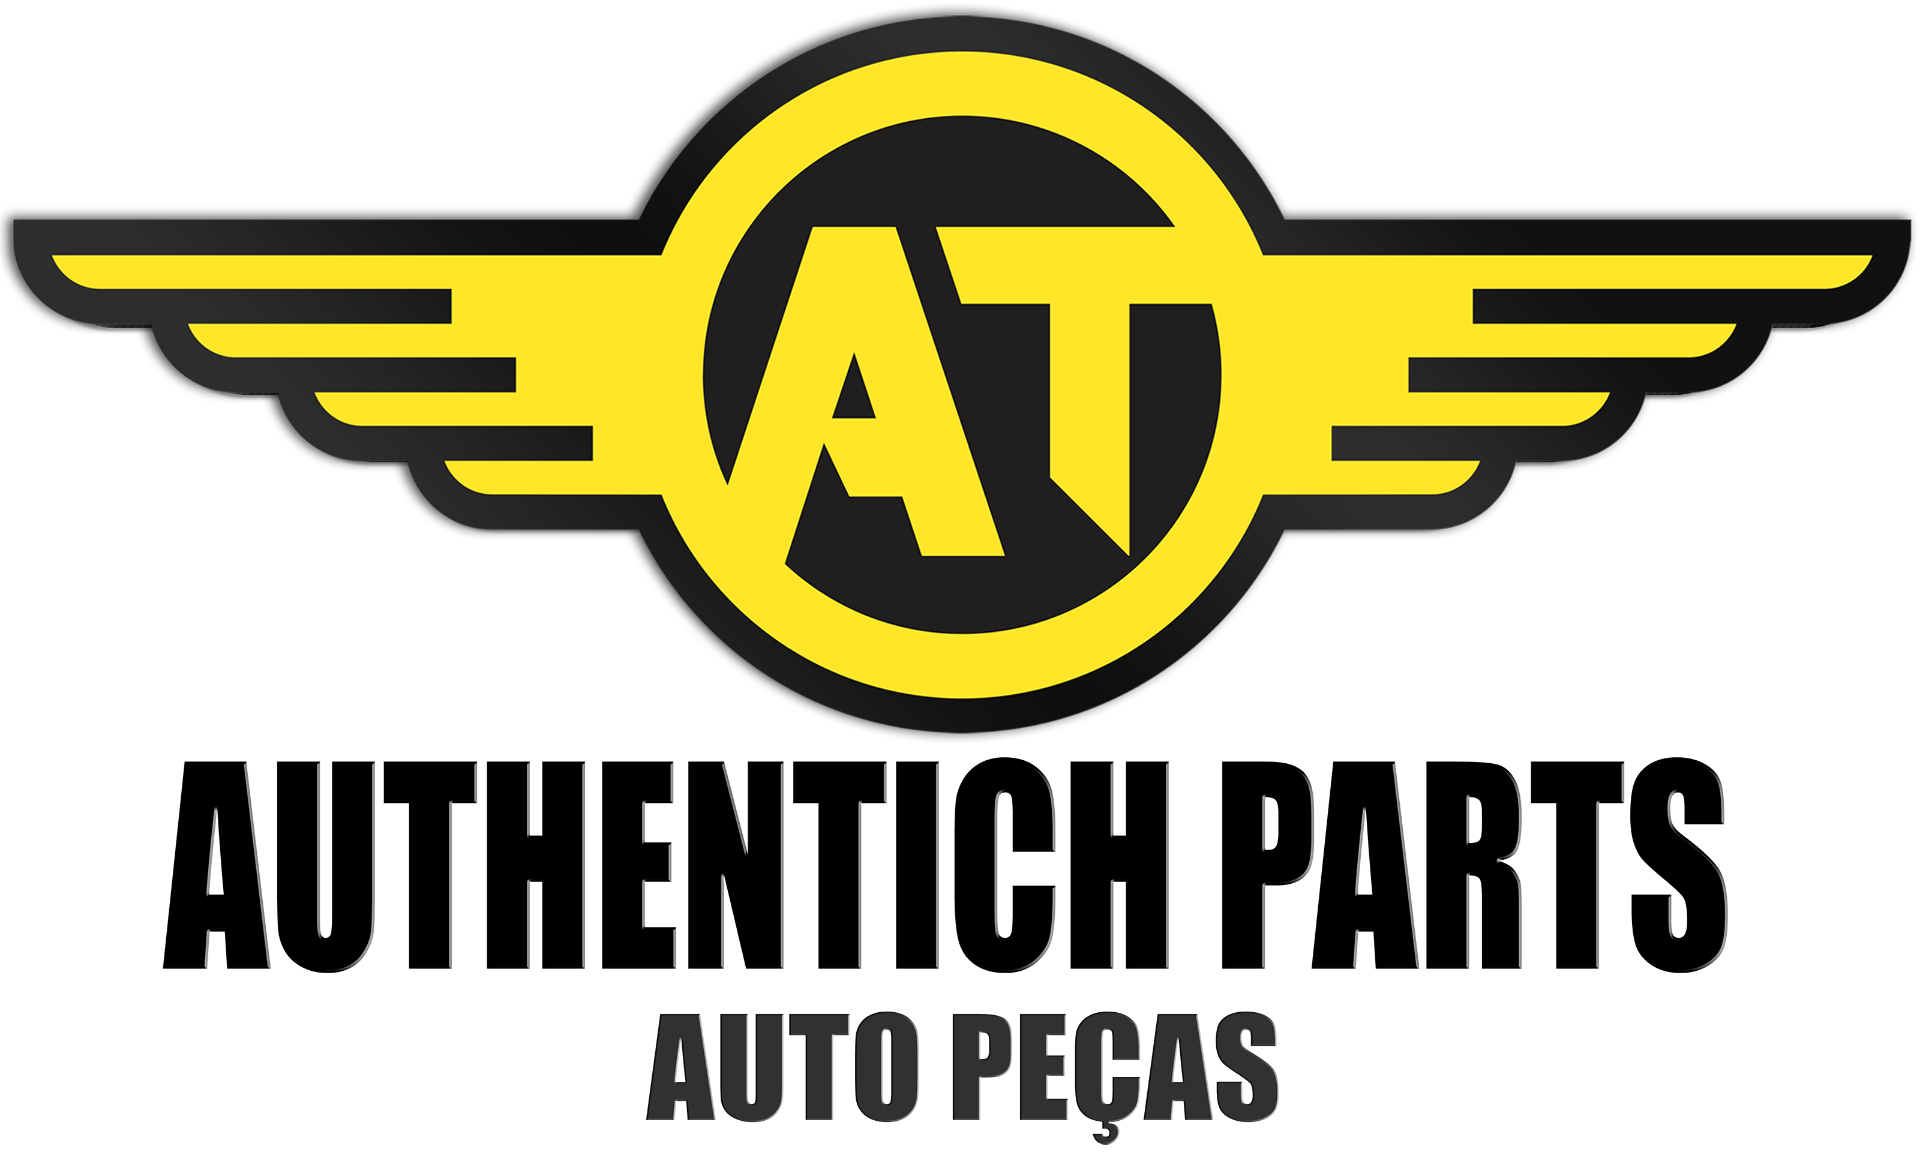 AUTHENTICHPARTS